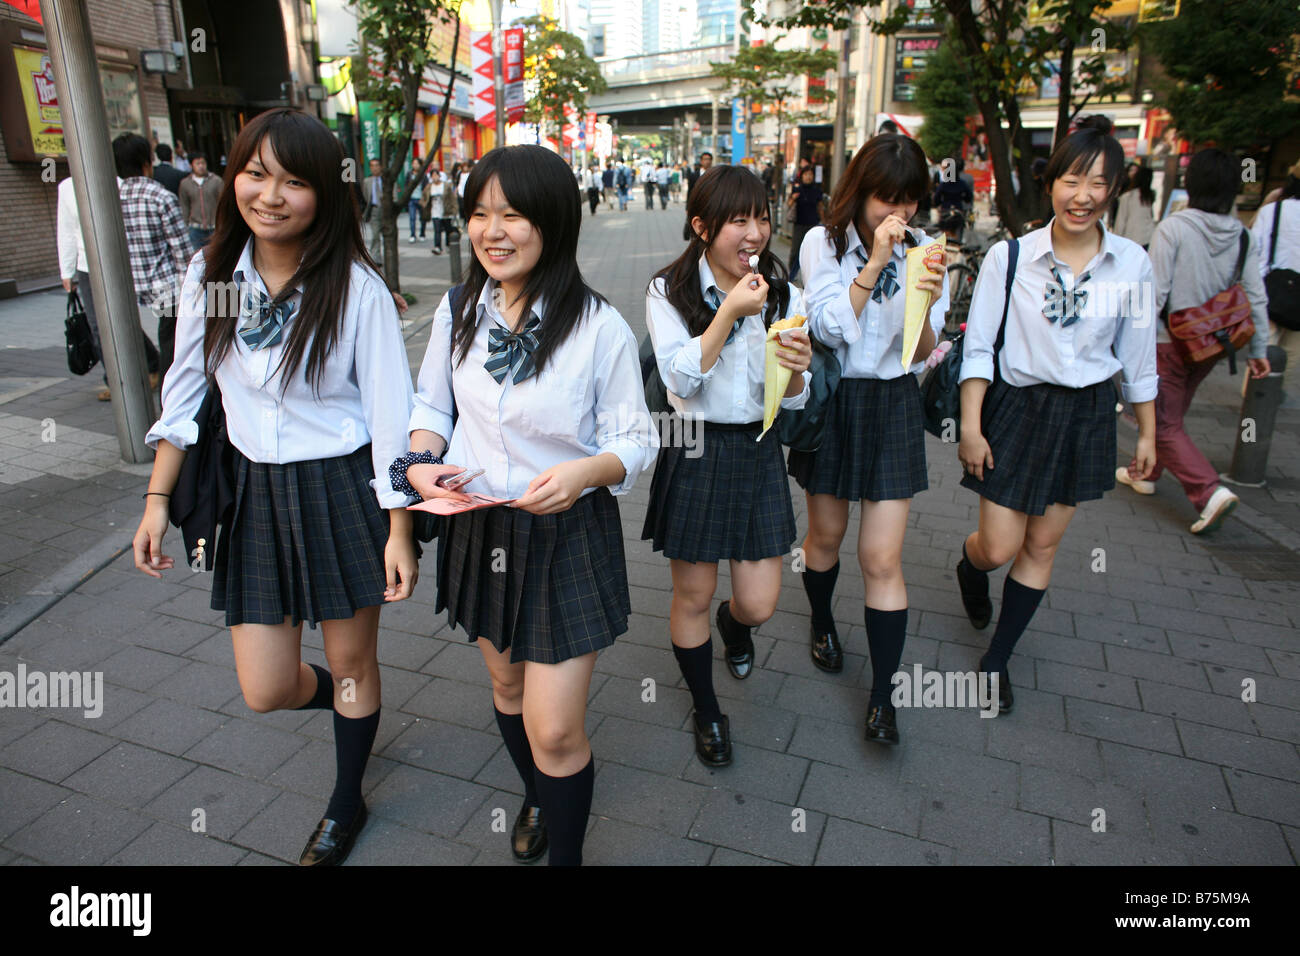 Japanese Student On Her Way To School In Tokyo Japan Stock